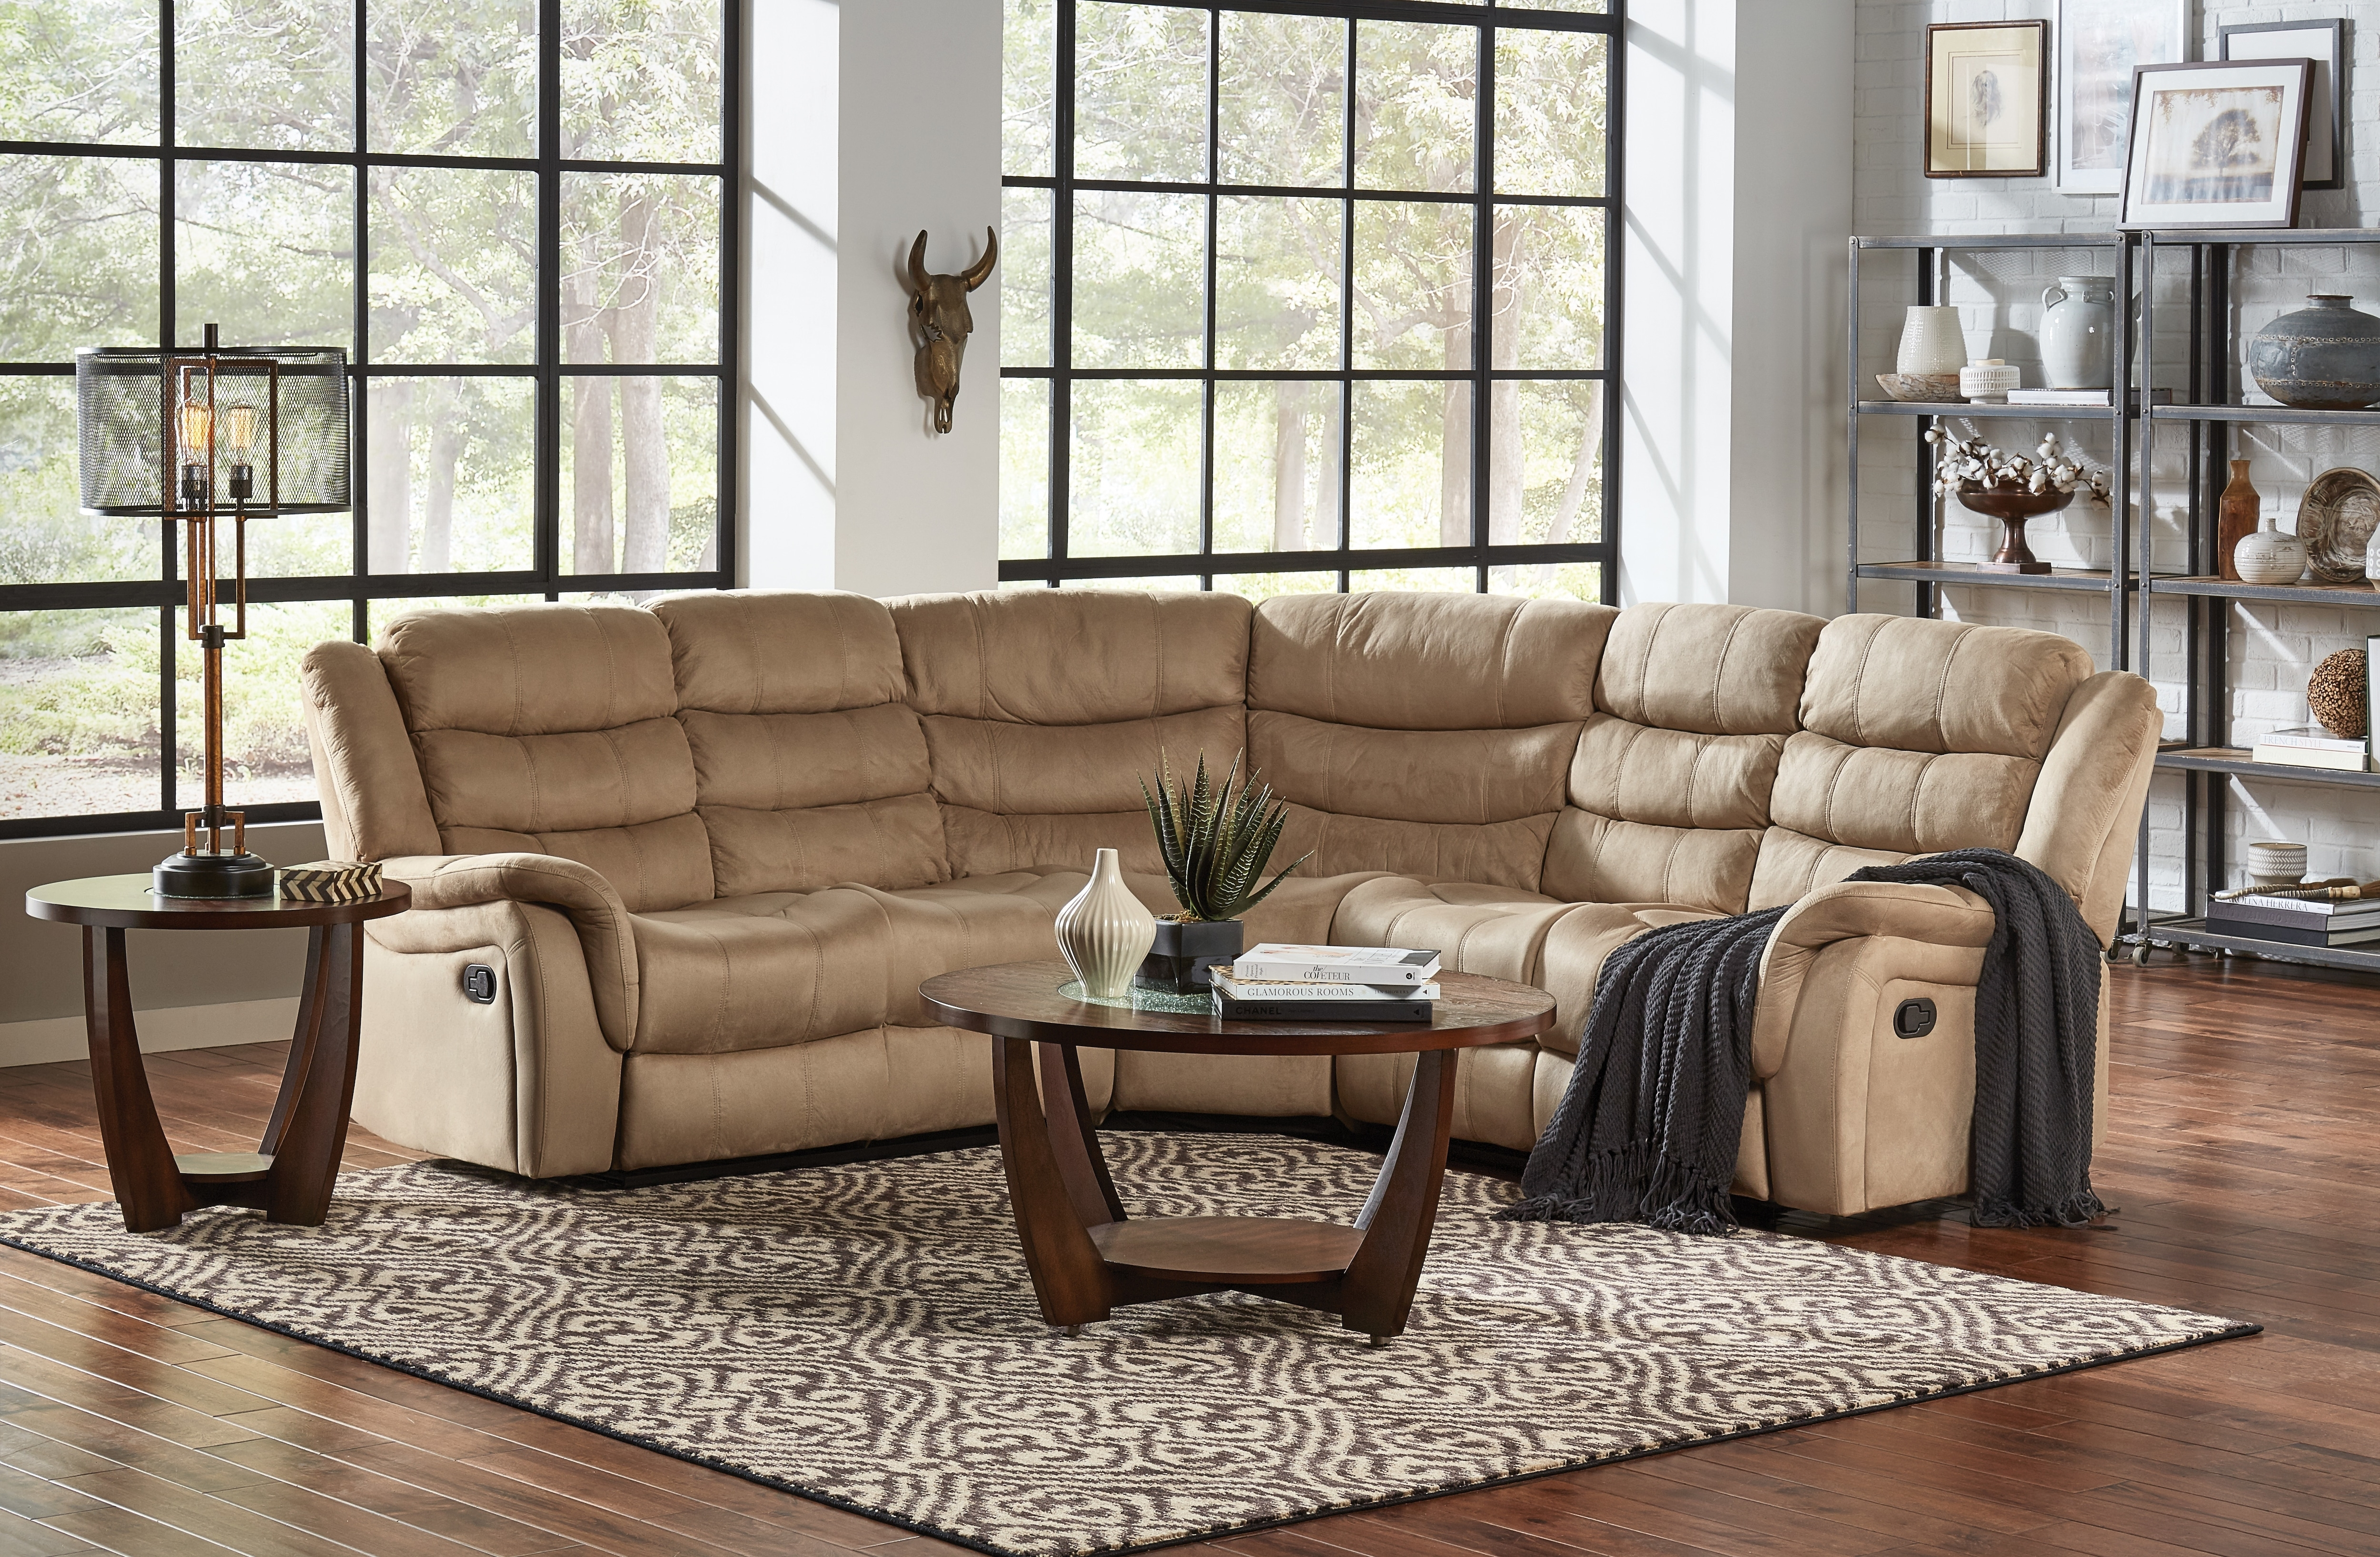 Benton 3Pc Reclining Sectional | within Benton 4 Piece Sectionals (Image 2 of 30)